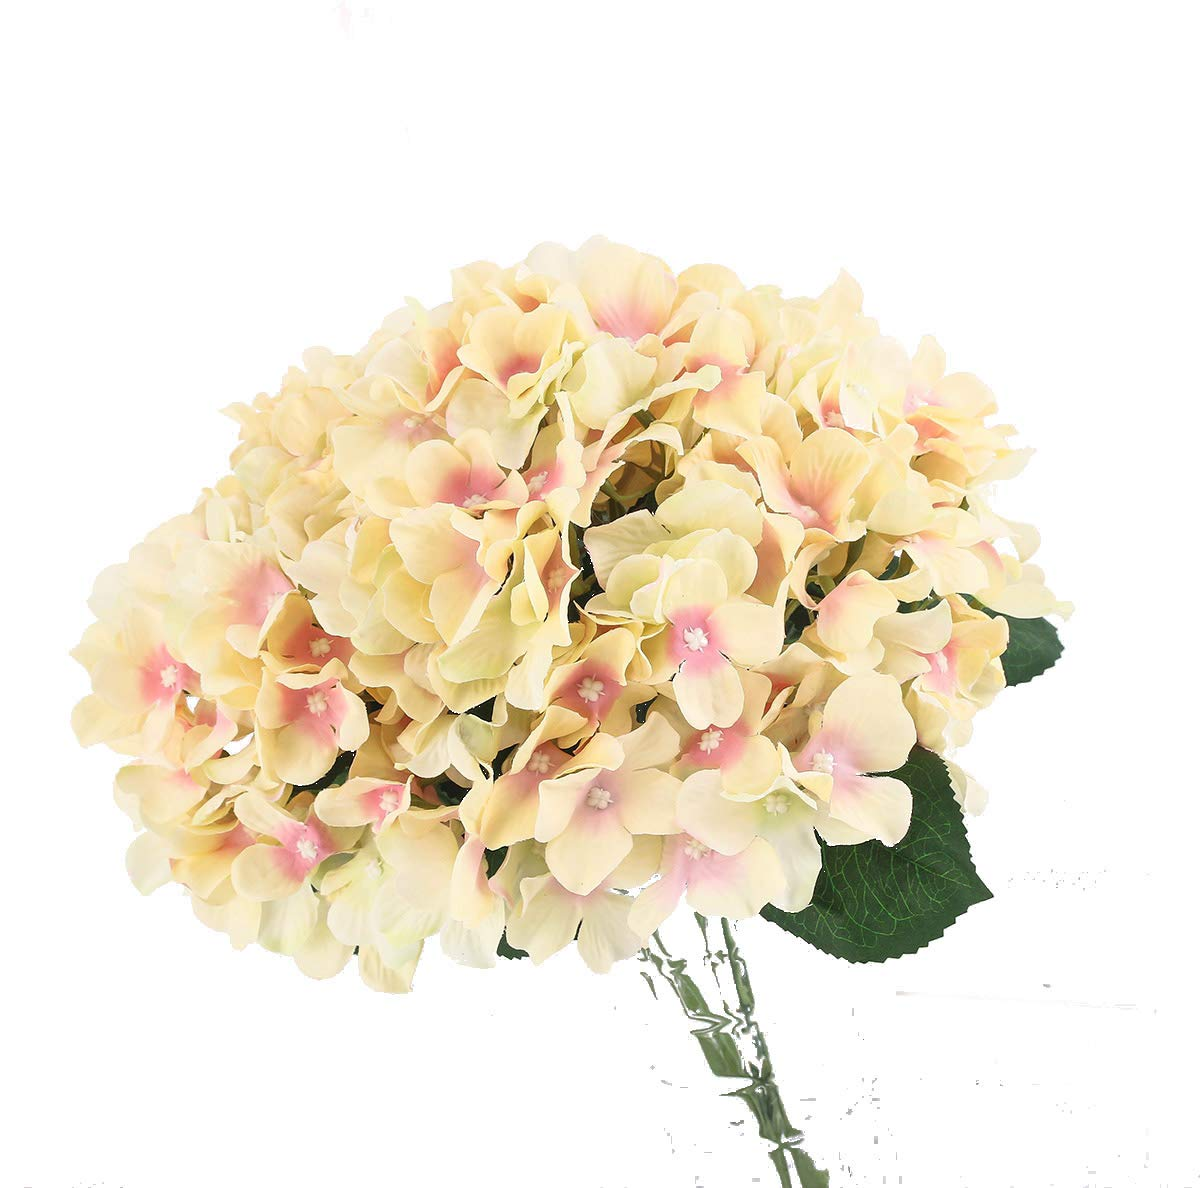 Charmly 7 Big Head Artificial Hydrangea Flowers Fake Silk Bouquet Flower for Home Hotel Wedding Party Garden Floral Decor Approx 17'' high Champagne